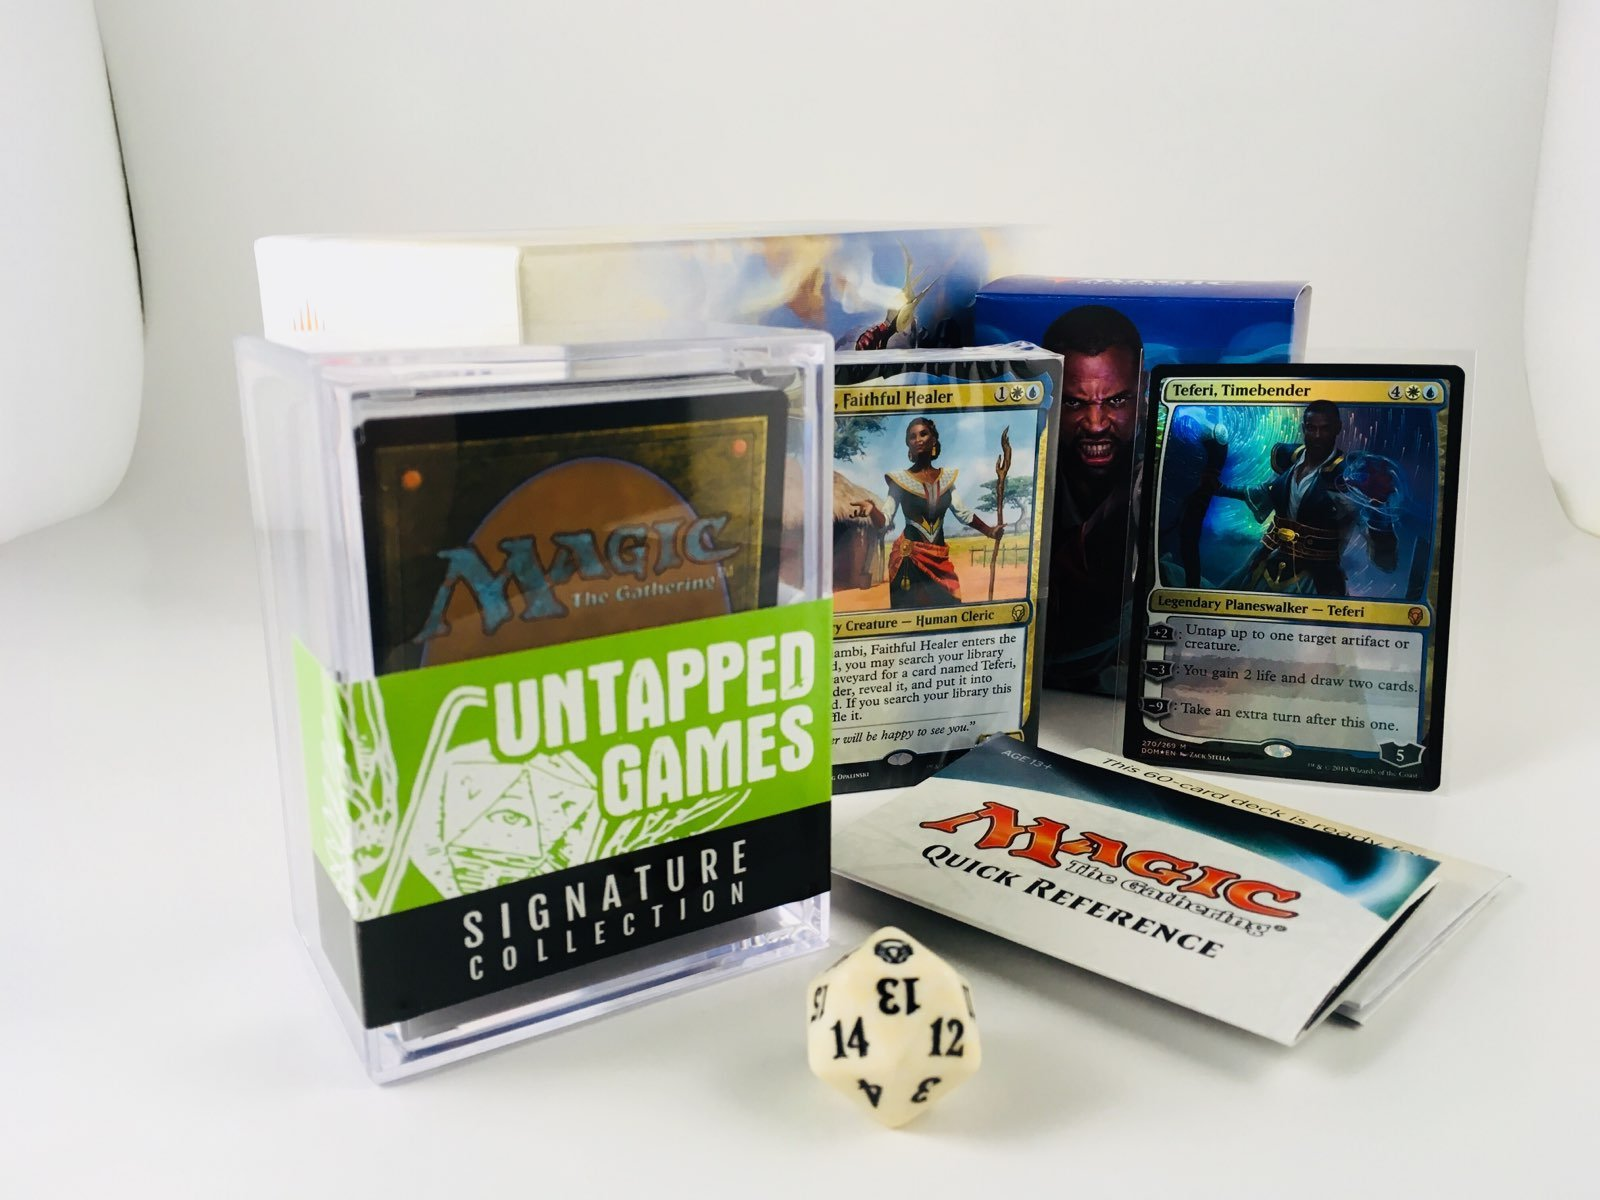 PLANESWALKER Magic: The Gathering Bundle! 60 Card Ready to Play Deck, 100 Extra Assorted Cards, Storage Box, Spindown Life Counter! Untapped Games Signature Collection